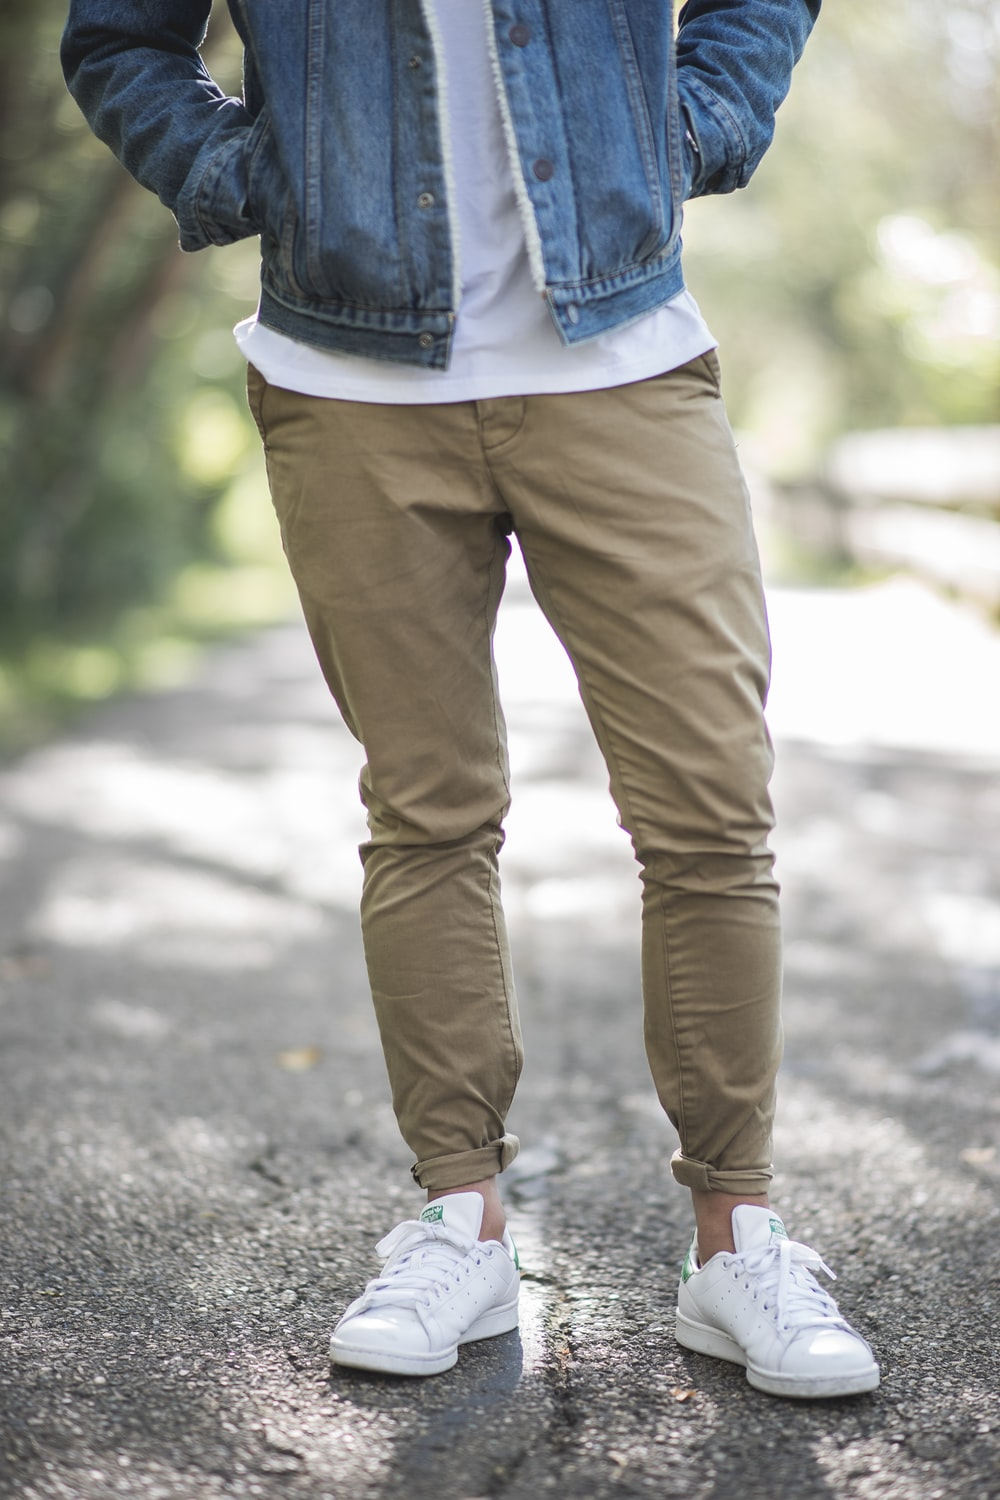 Man Wearing Brown Fitted Jeans And Sneakers Standing On Road At Daytime